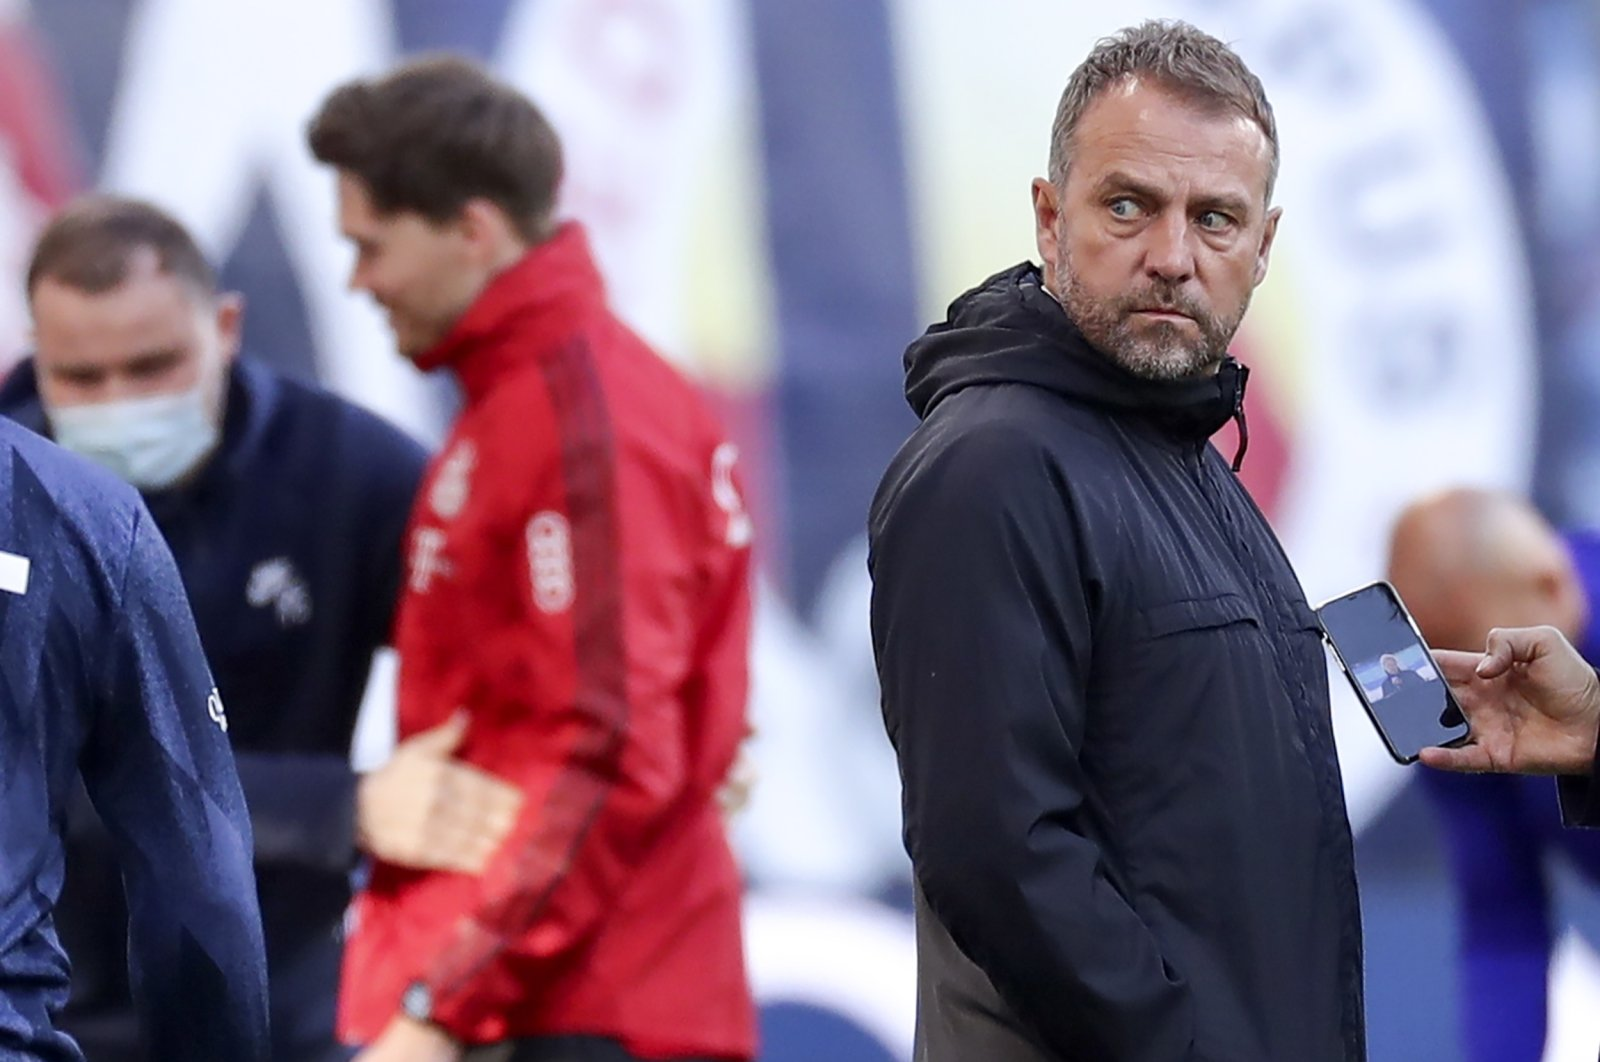 Bayern Munich coach Hansi Flick reacts during a Bundesliga match against RB Leipzig at Red Bull Arena in Leipzig, Germany, April 3, 2021. (EPA Photo)